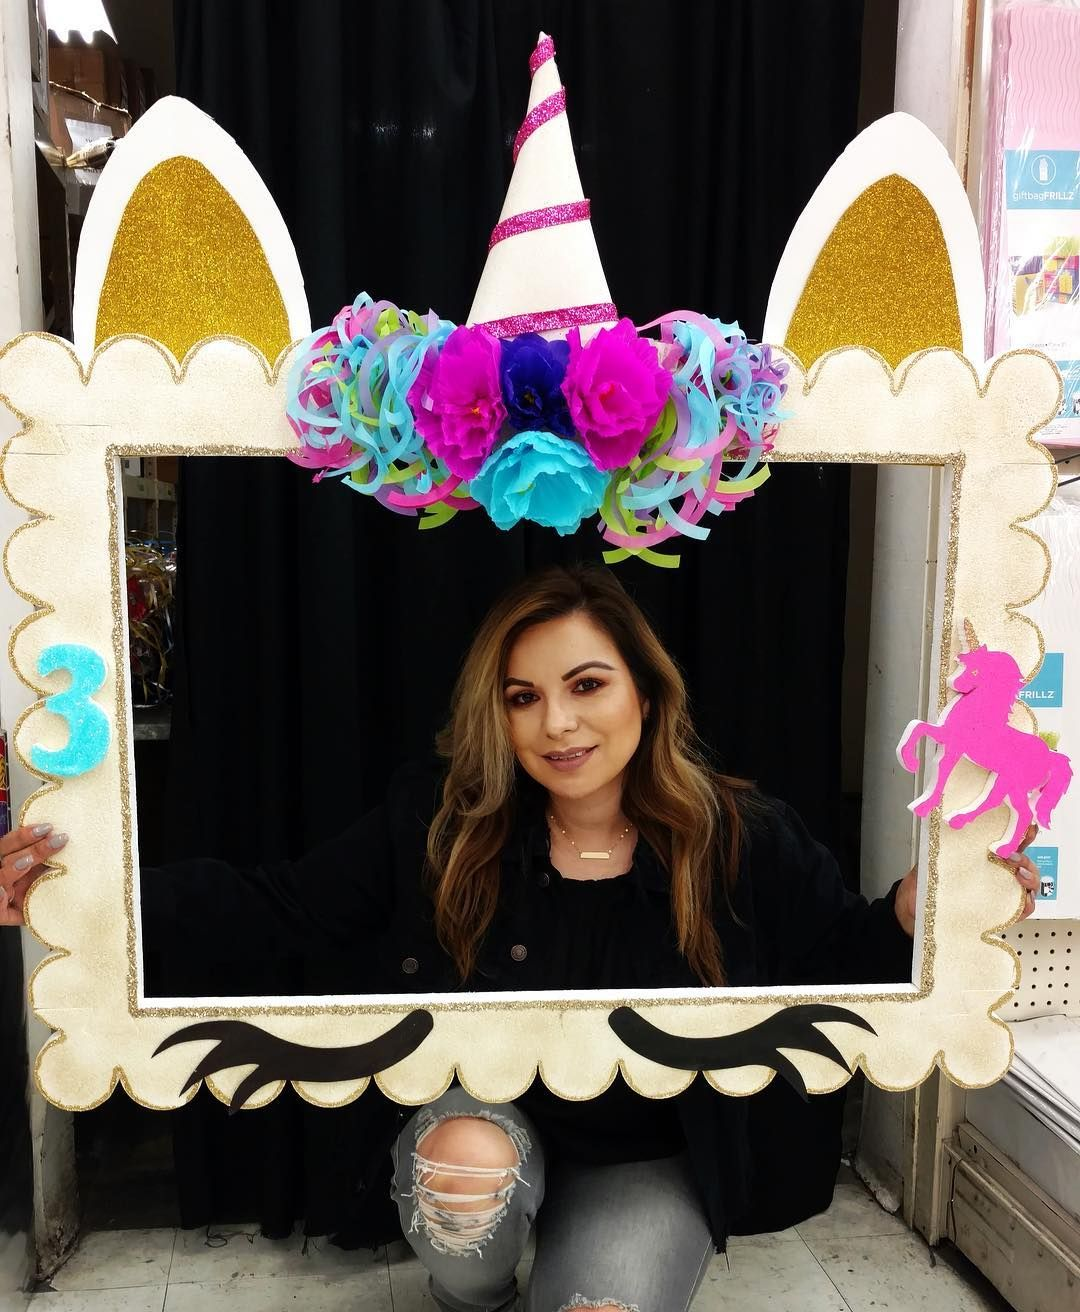 Make your own unicorn selfie frame with our Styrofoam